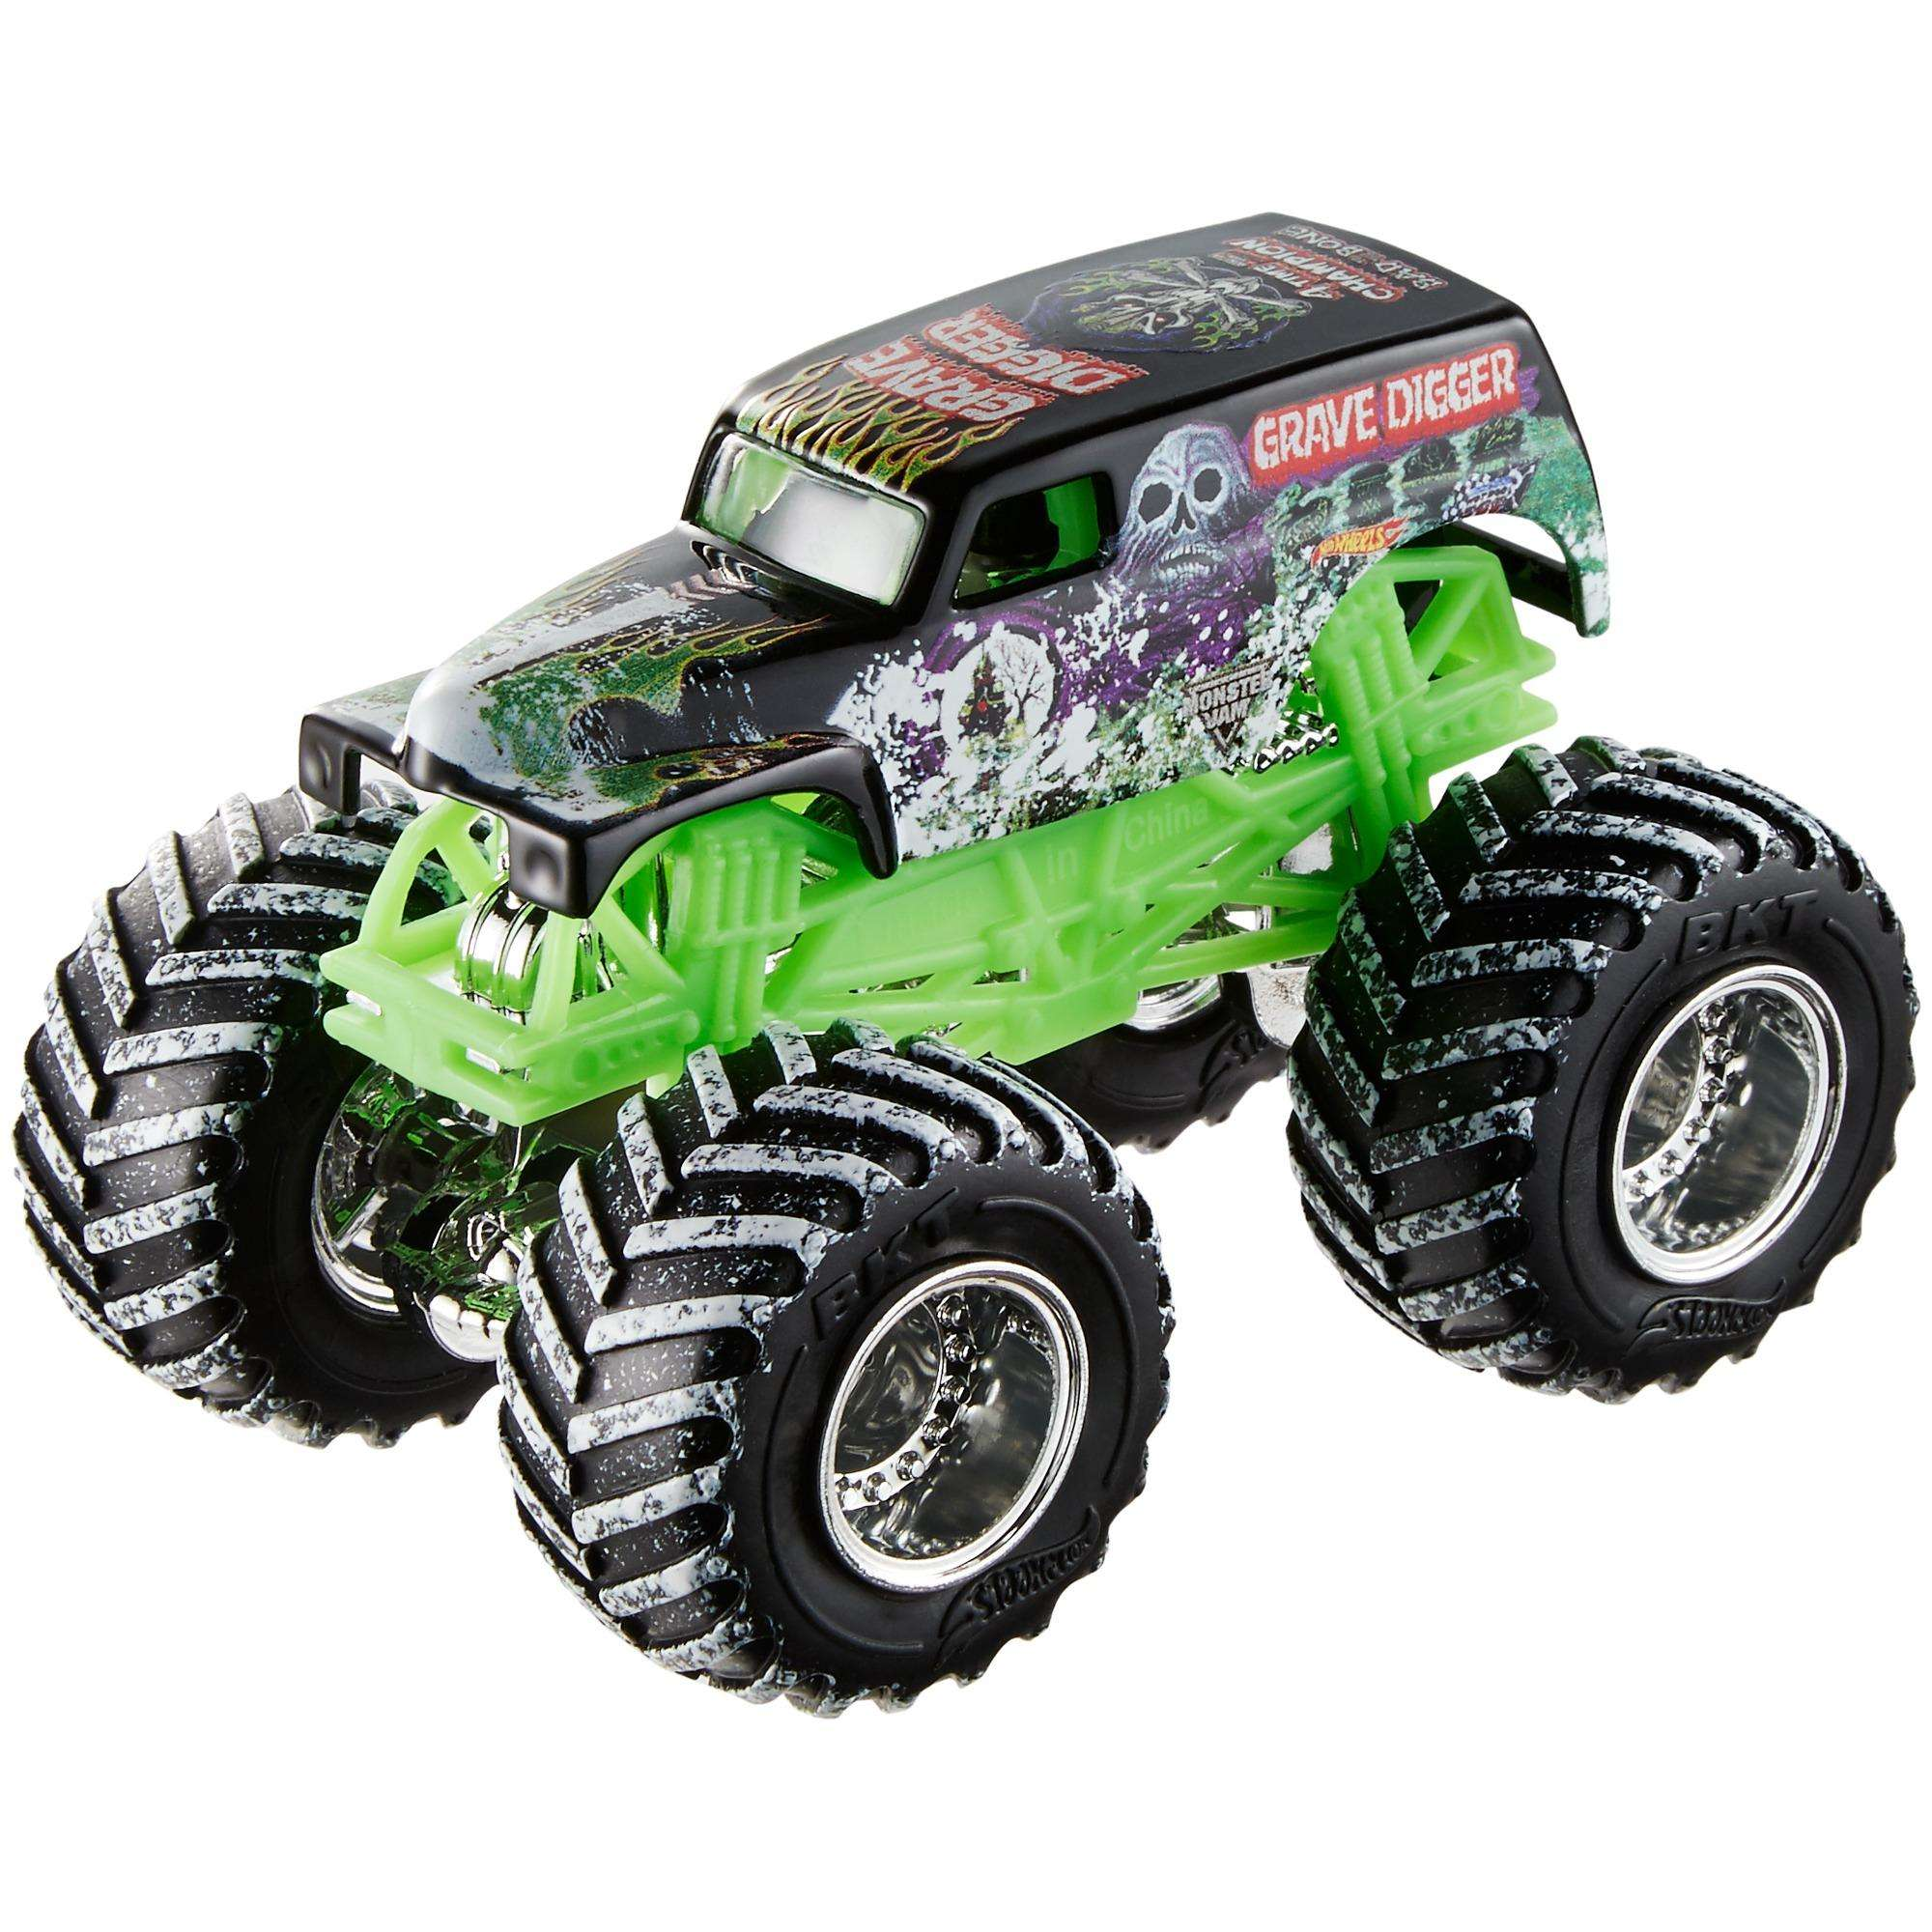 Hot Wheels Monster Jam 1:64 Scale Snow Vehicles (Styles May Vary)